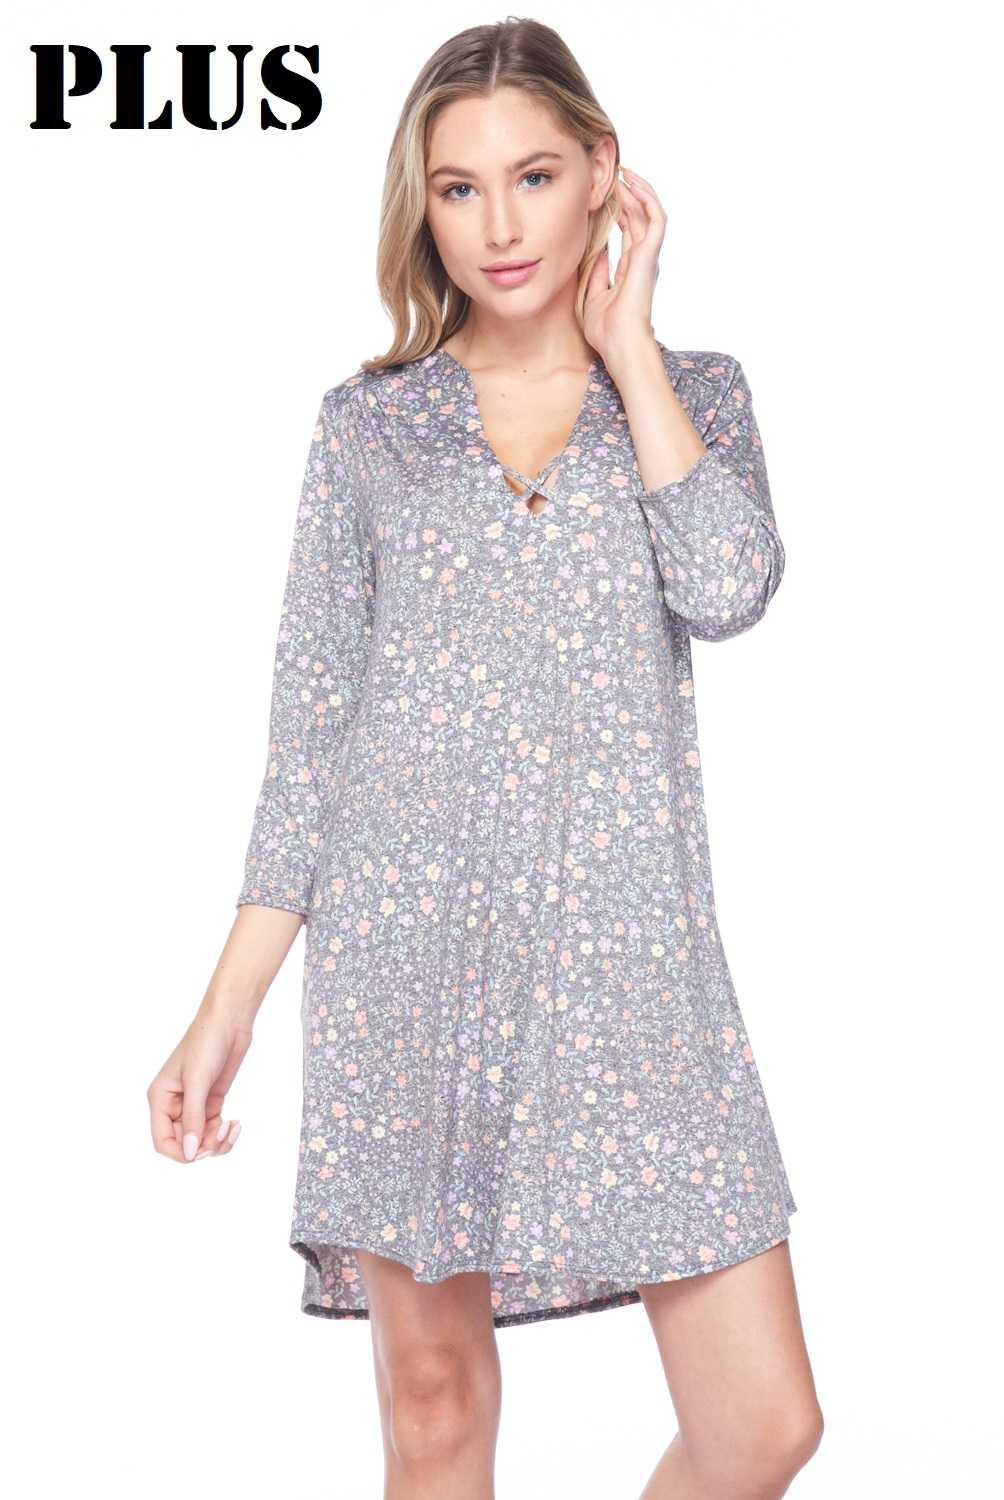 PLUS Faded Allover Tiny Floral Print V-Neck Dress